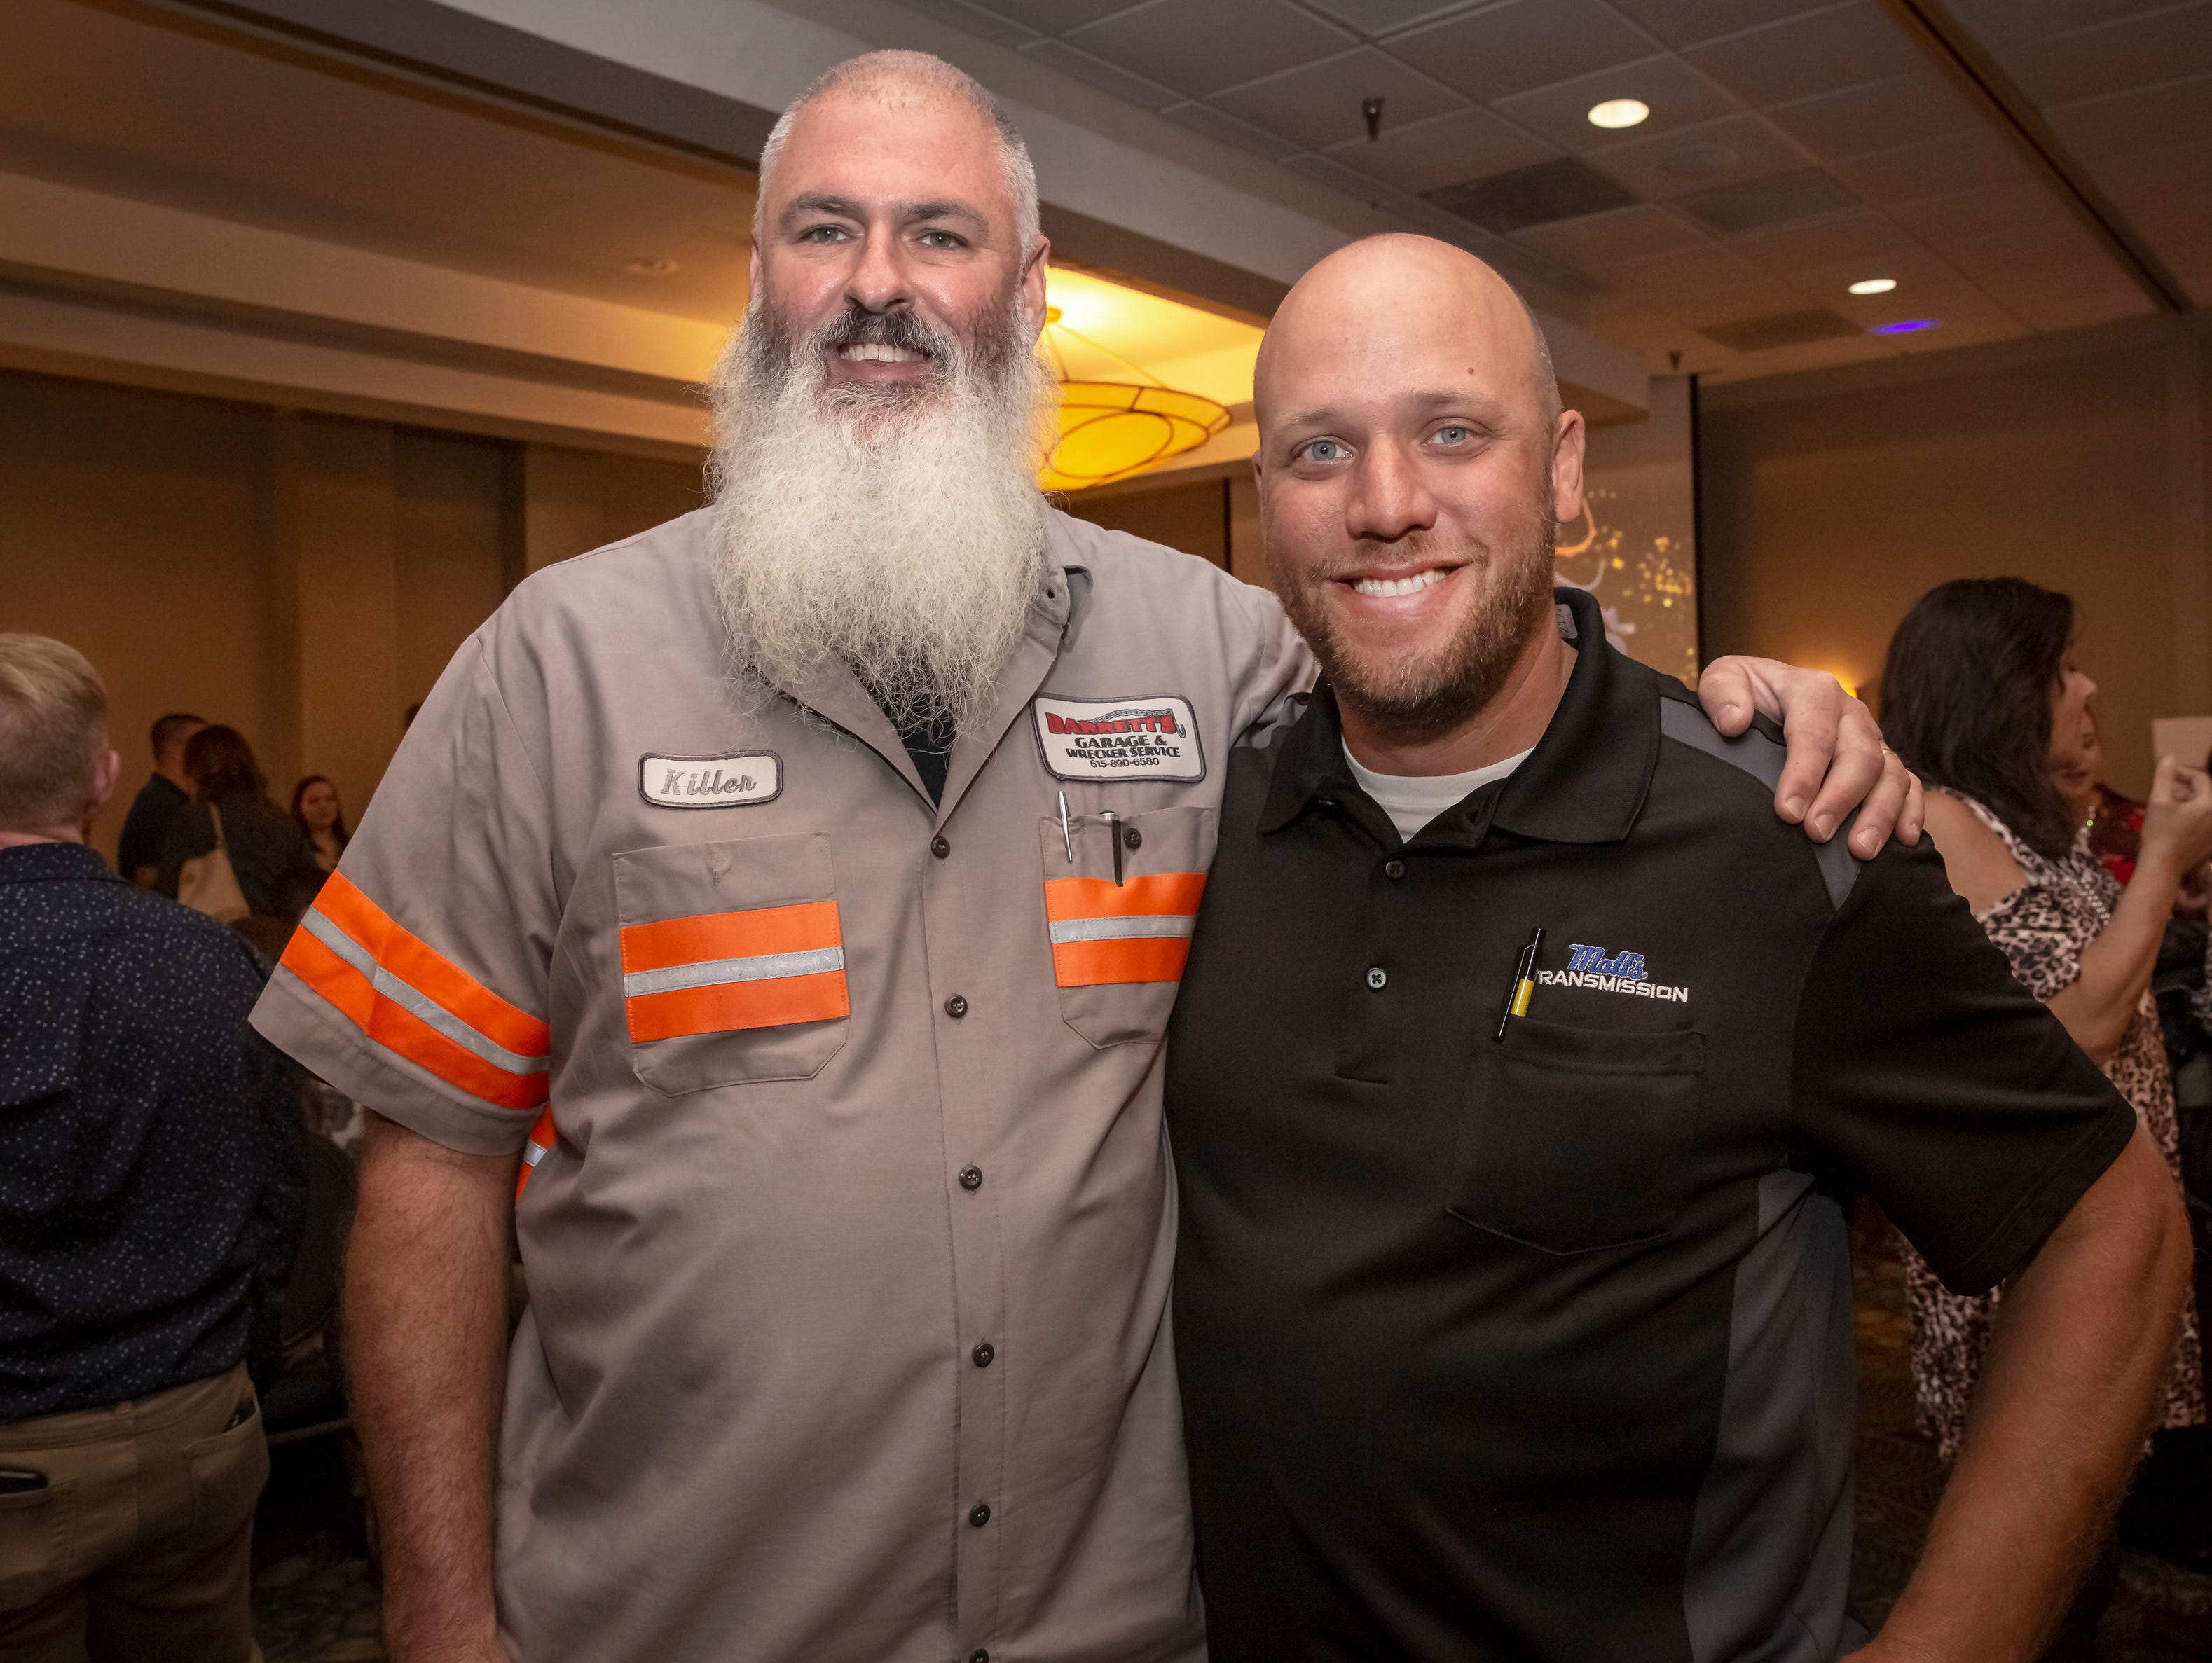 Mike Pruitt and Matt Brabender at the 24th annual Ruthie awards held at DoubleTree on Old Fort Parkway.